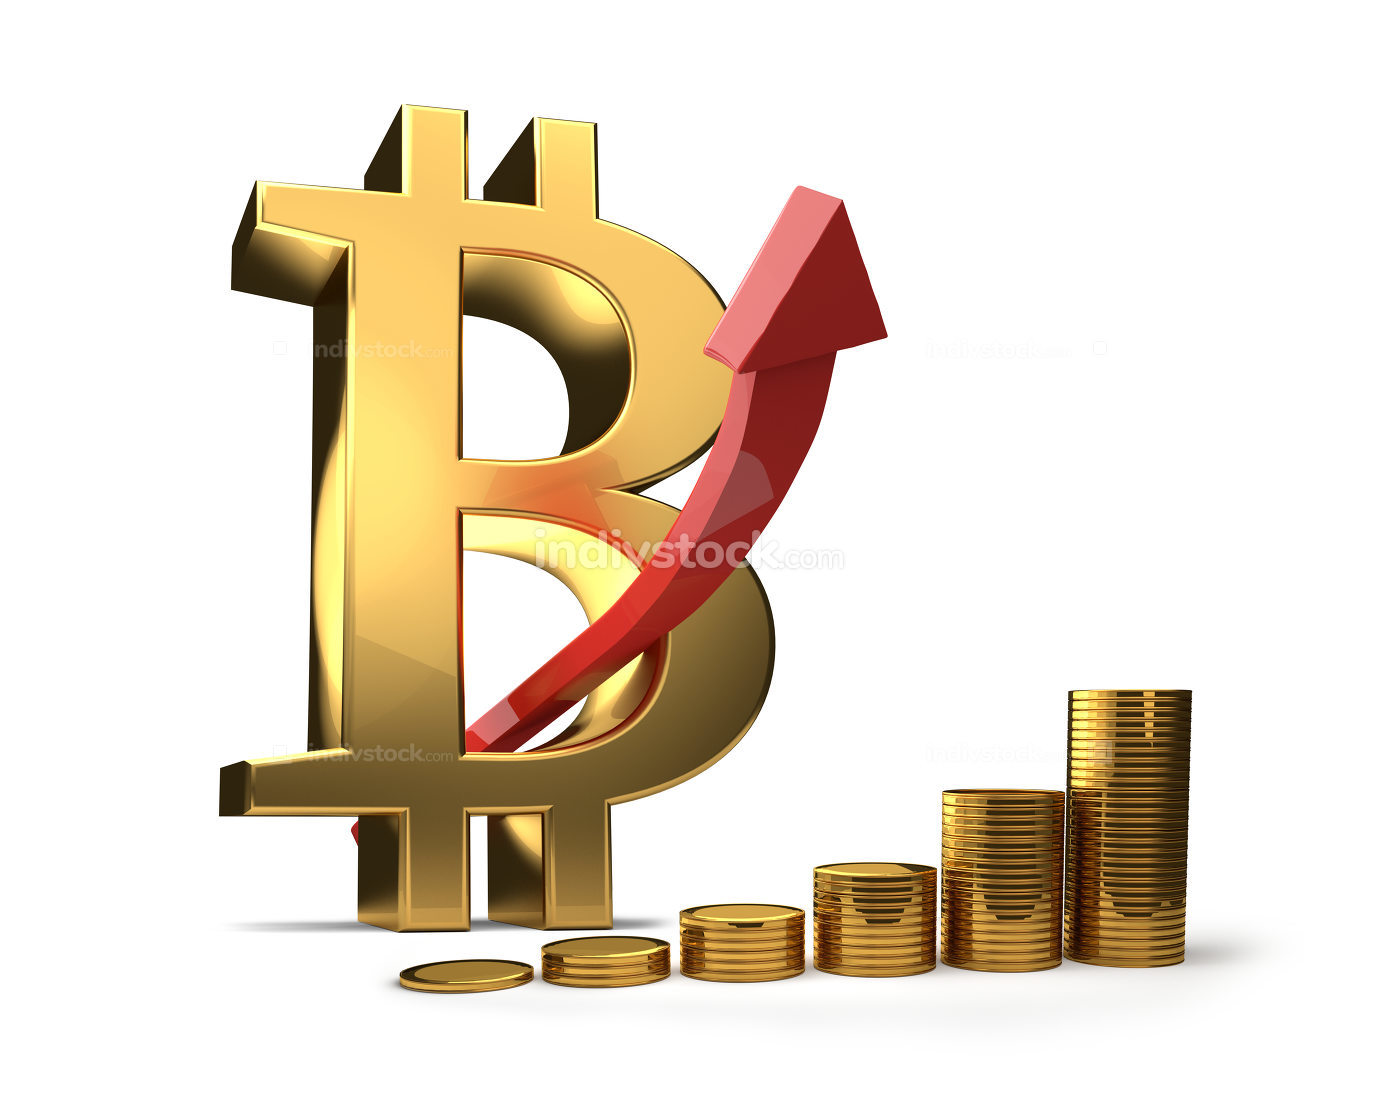 Bitcoin high increase 3D illustration